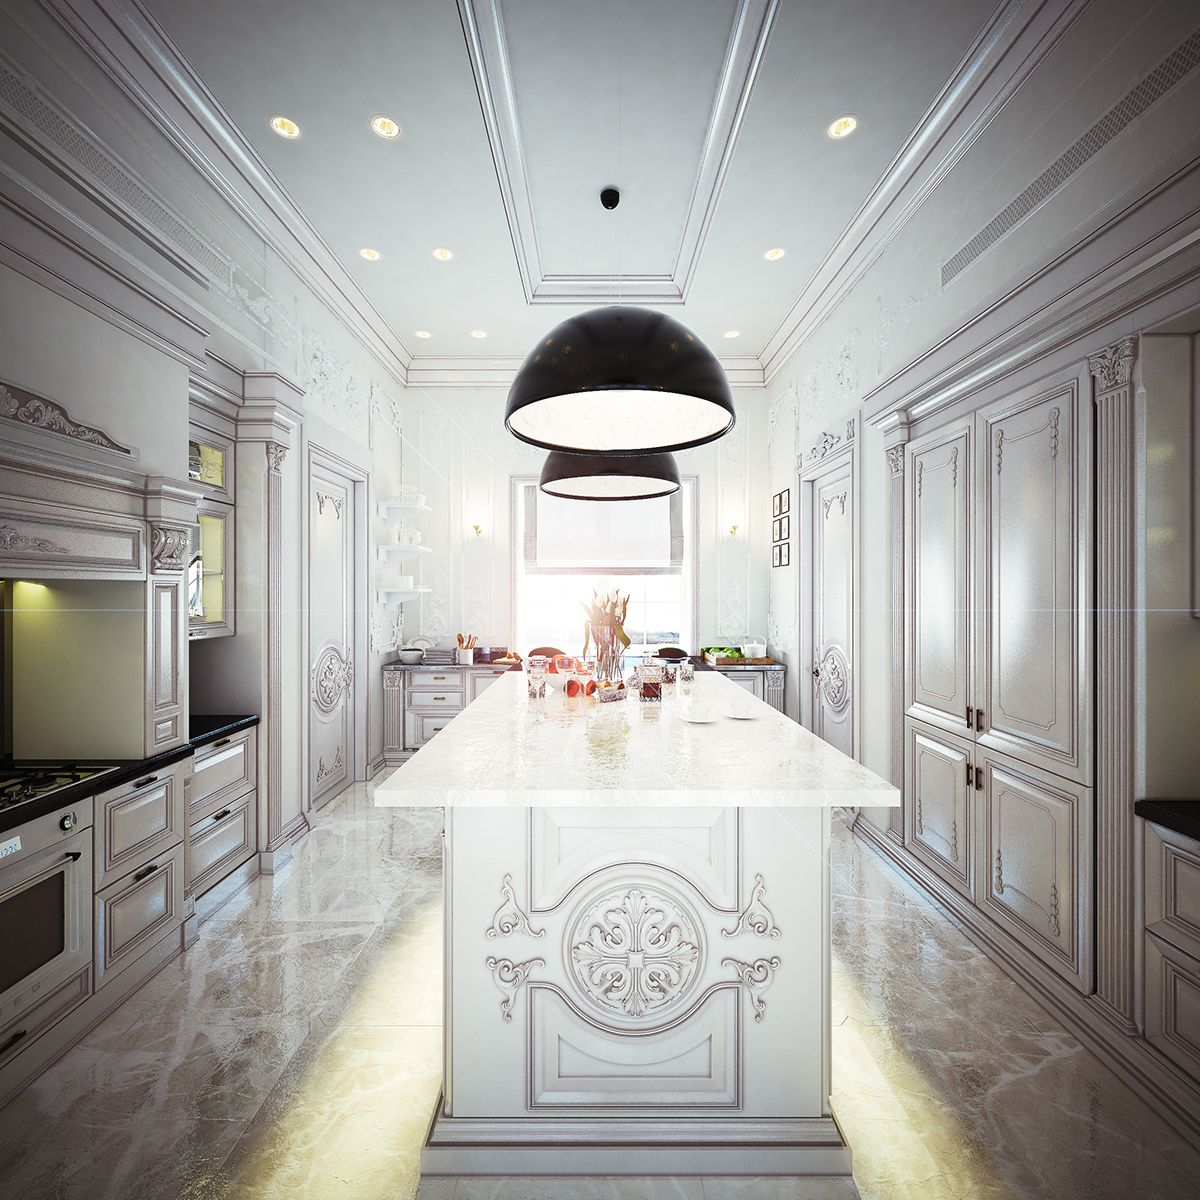 R Class Interior Design On Behance Interior Design Interior